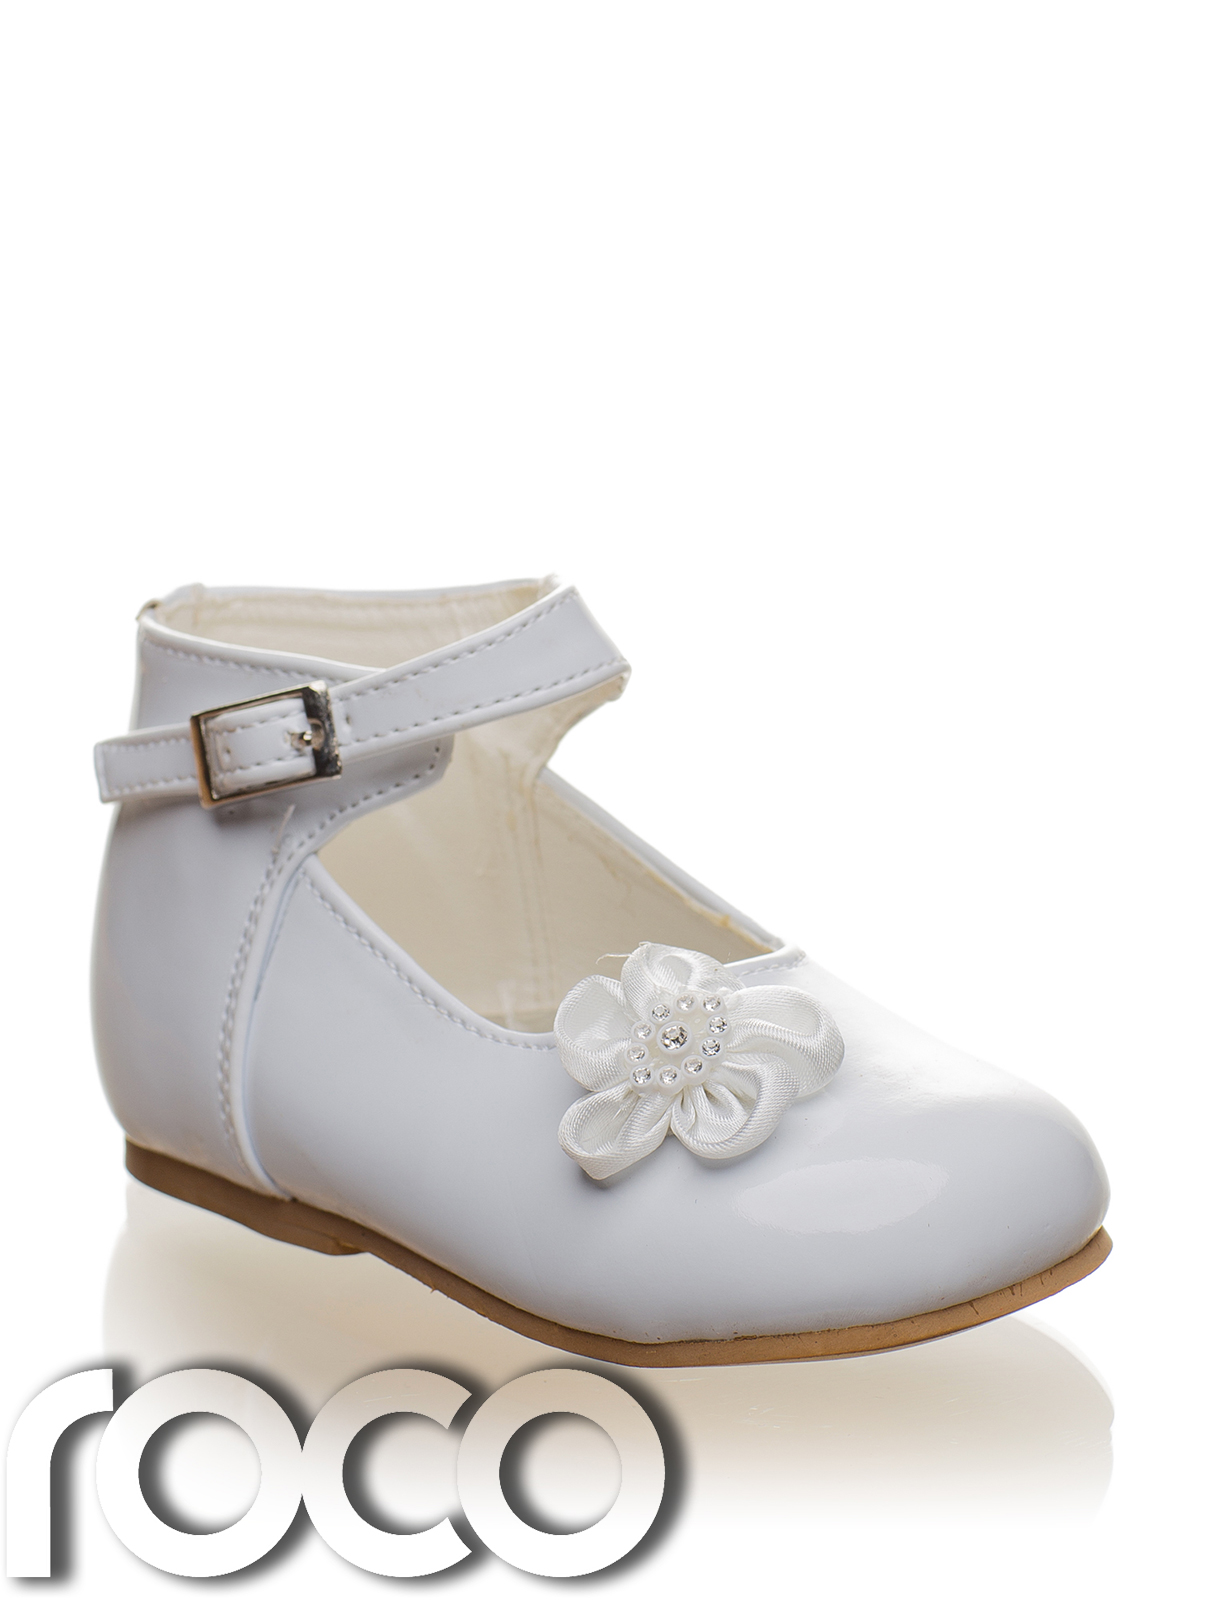 Simple Toddler Flower Girl Shoes Inspiration Baby Bryone